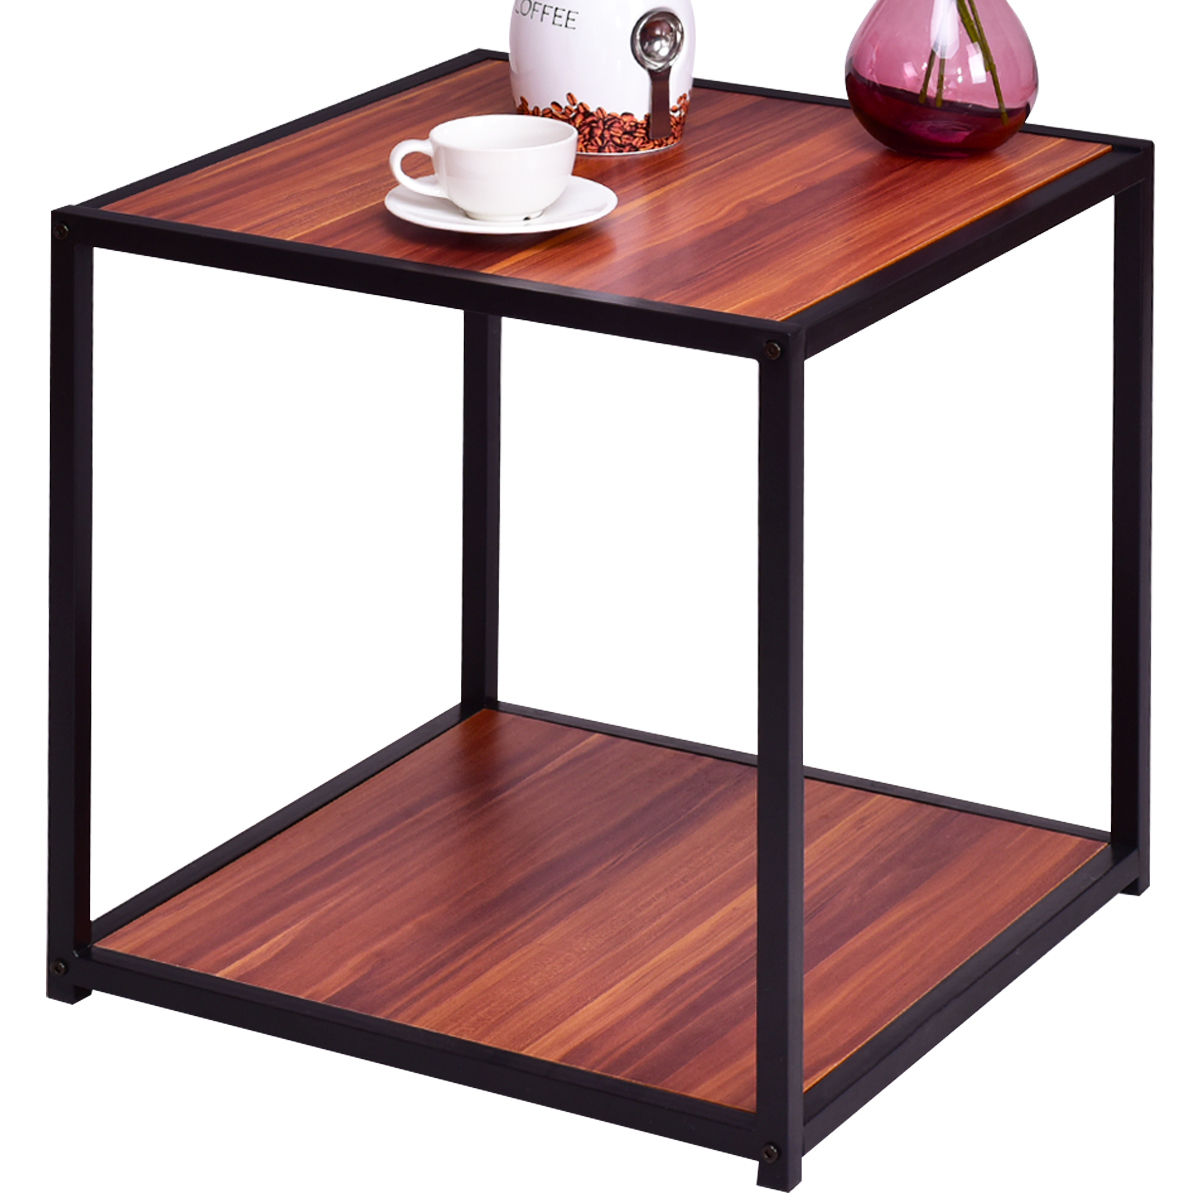 Giantex End Table Side Sofa Square Modern Coffee Tables Tea Stand Living Room Furniture Decor With Bottom Shelf HW55399 цена